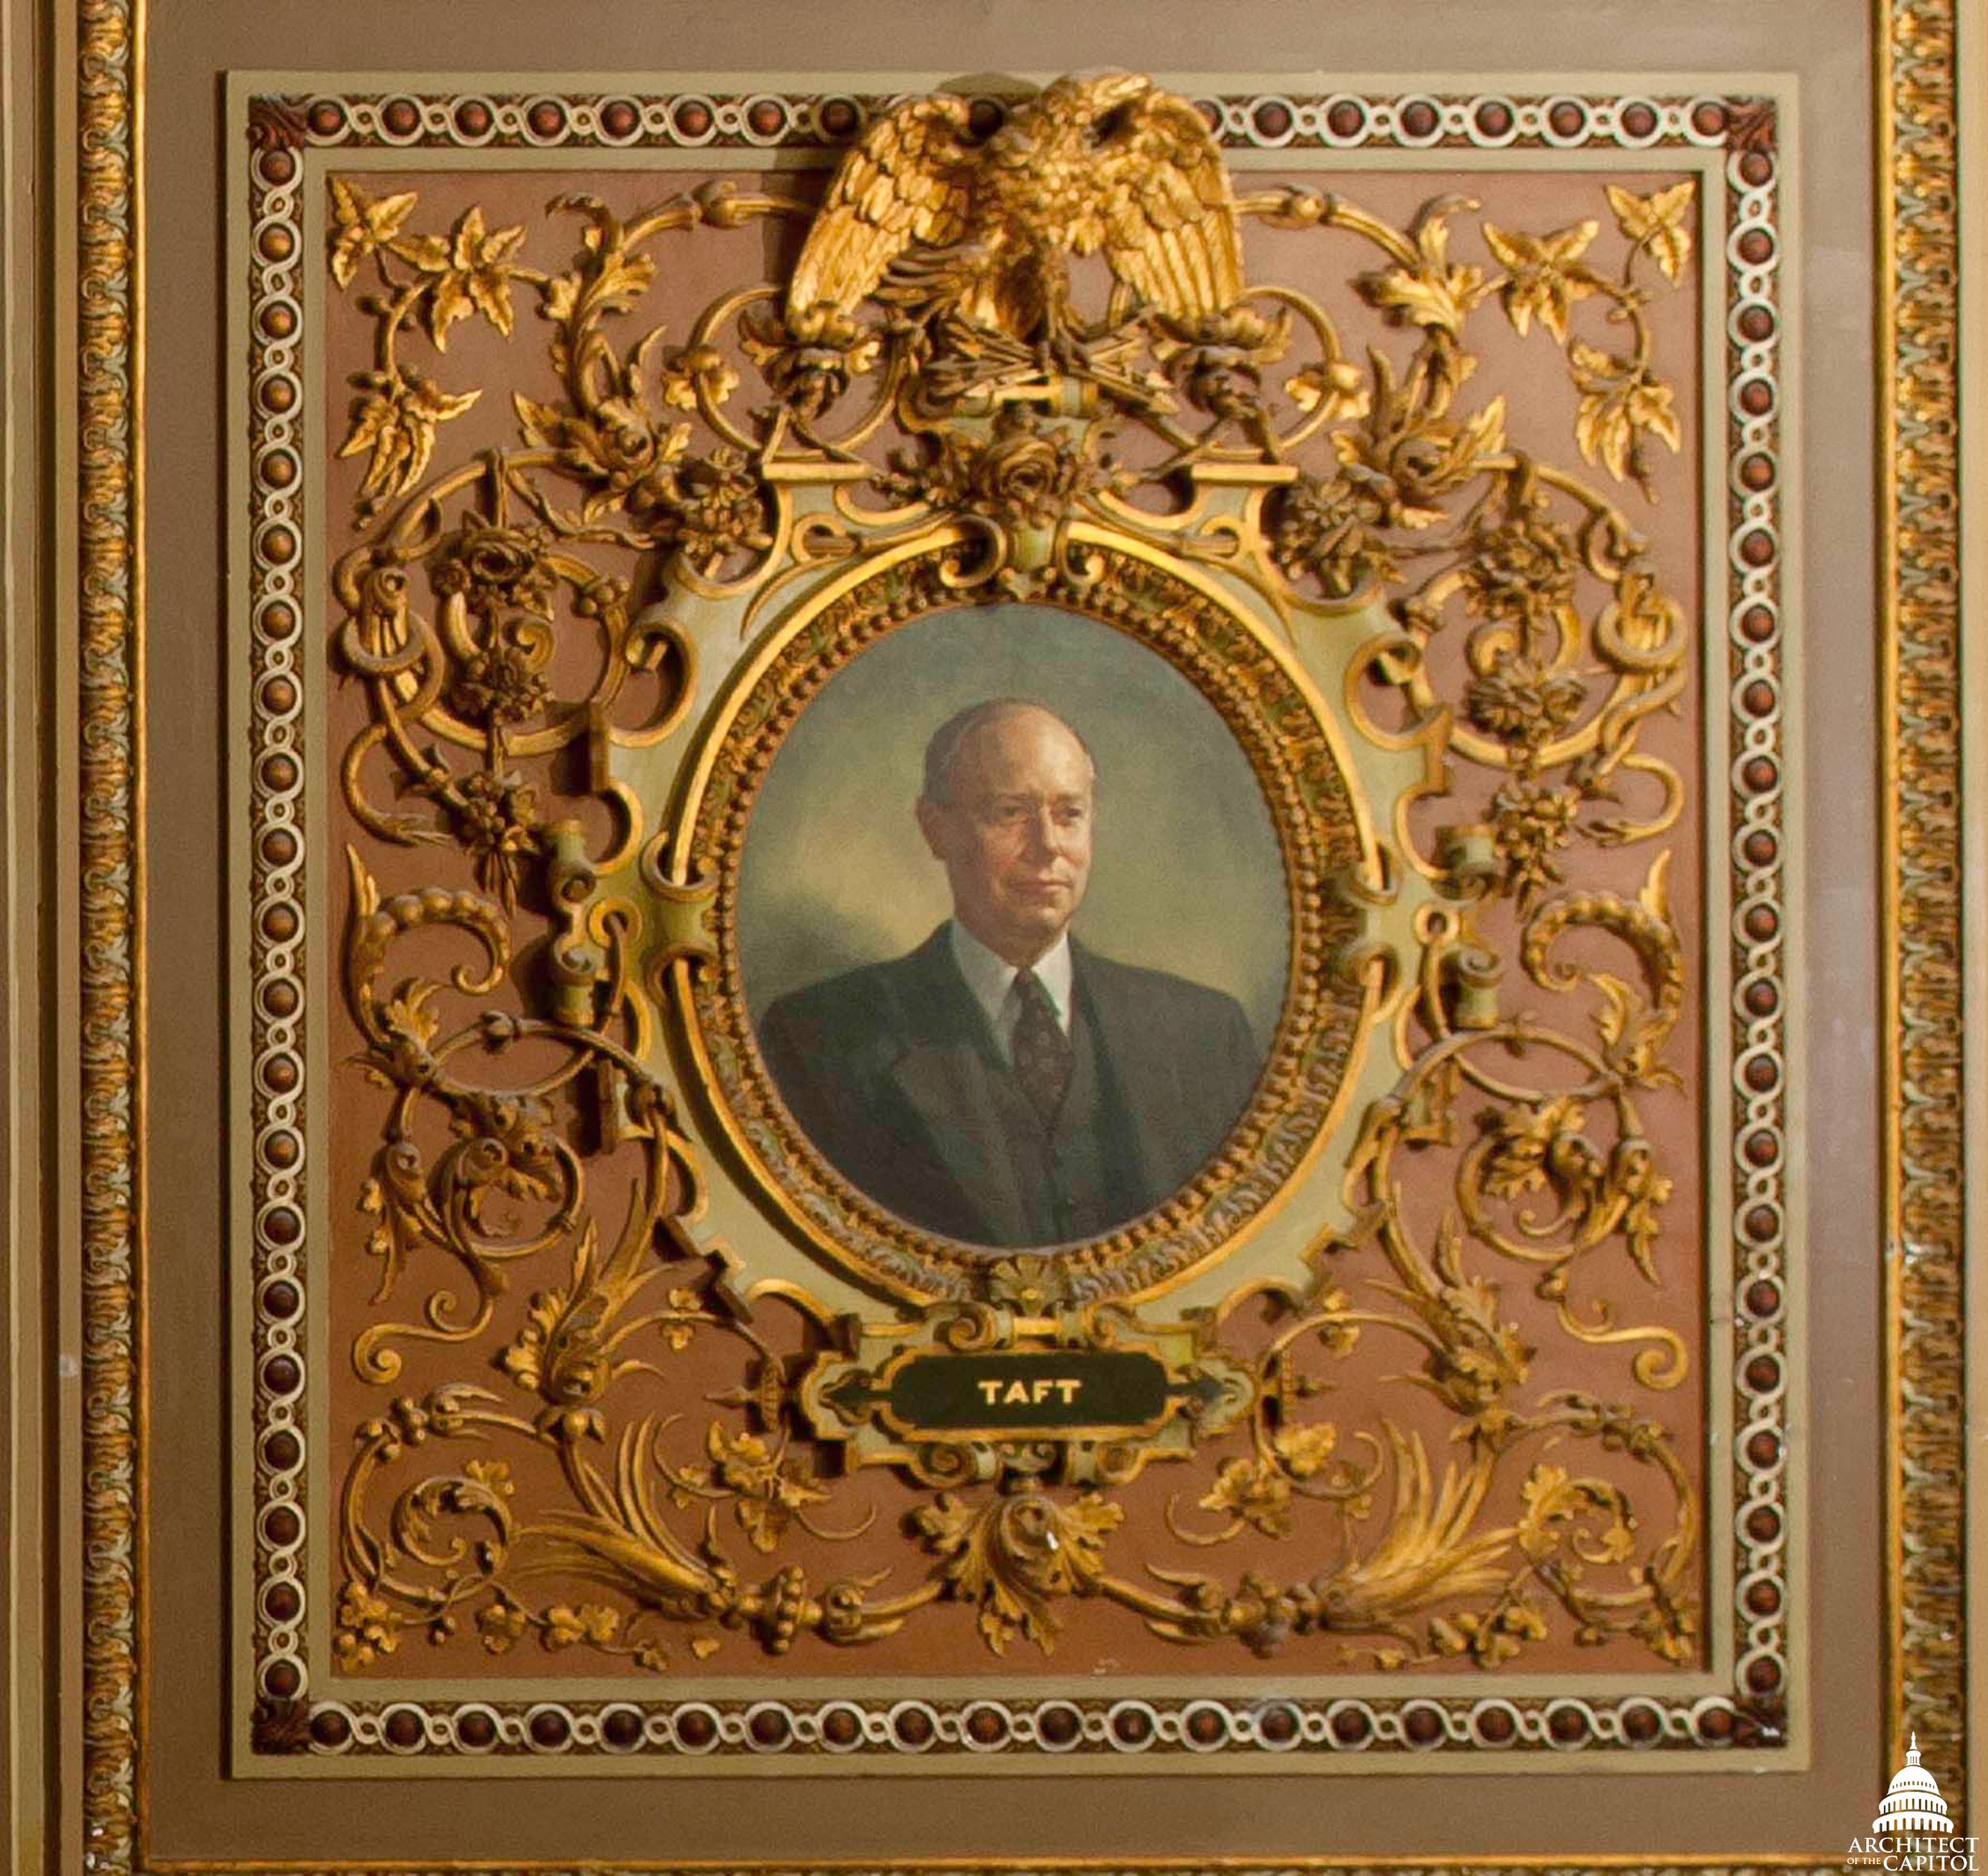 Photo of Robert Taft portriat by Deanne Keller, one of the Monuments Men.